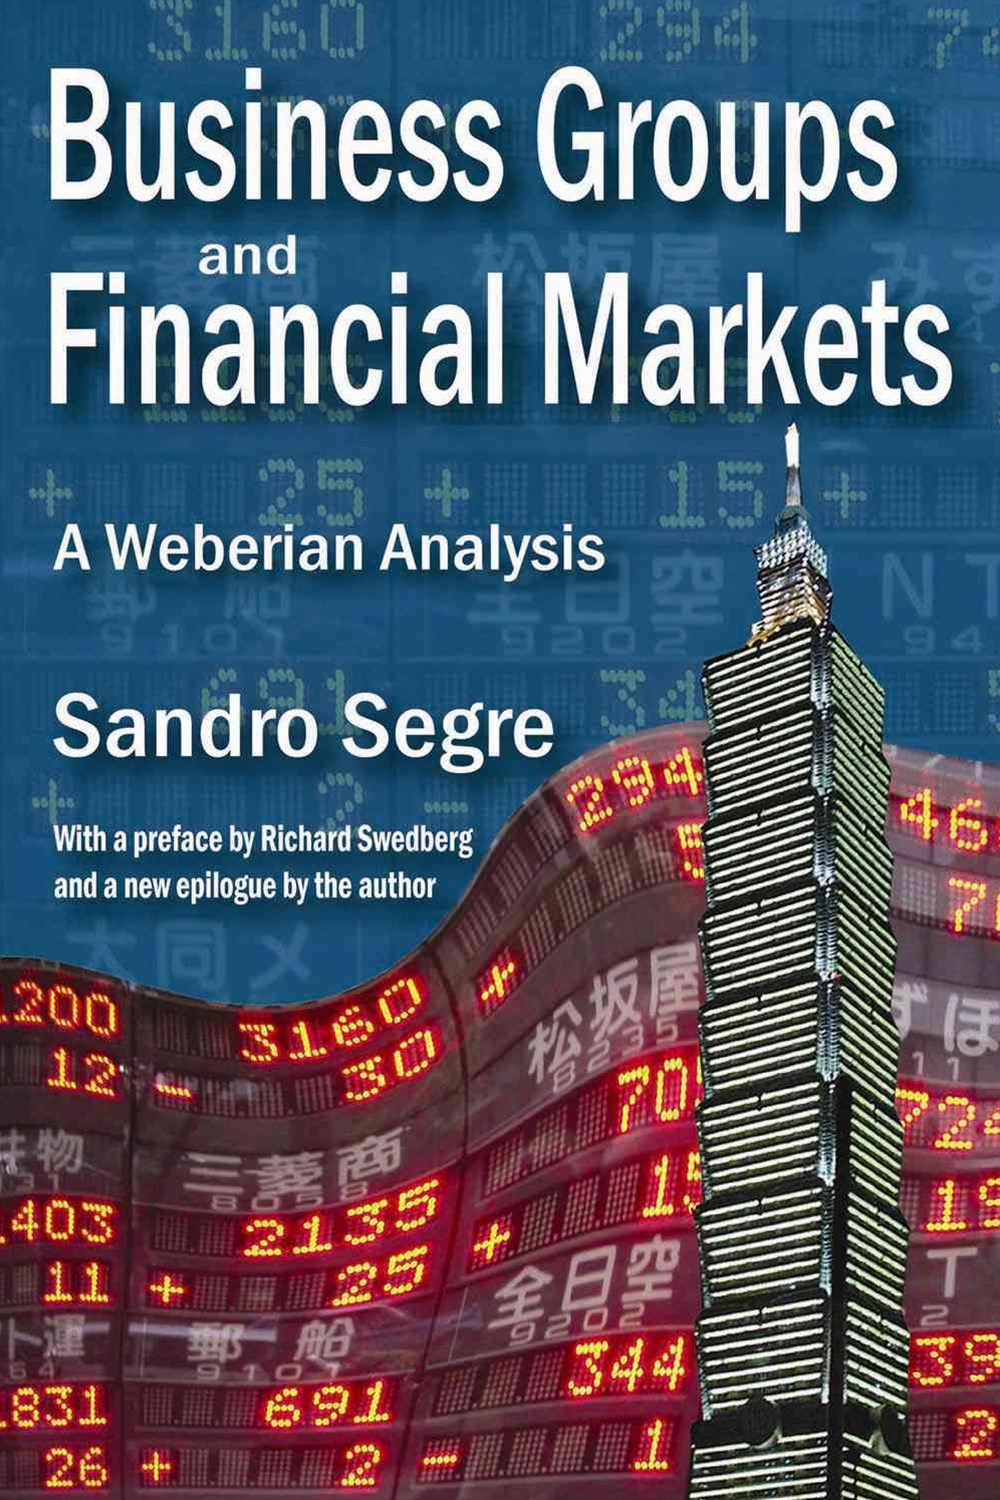 Business Groups and Financial Markets